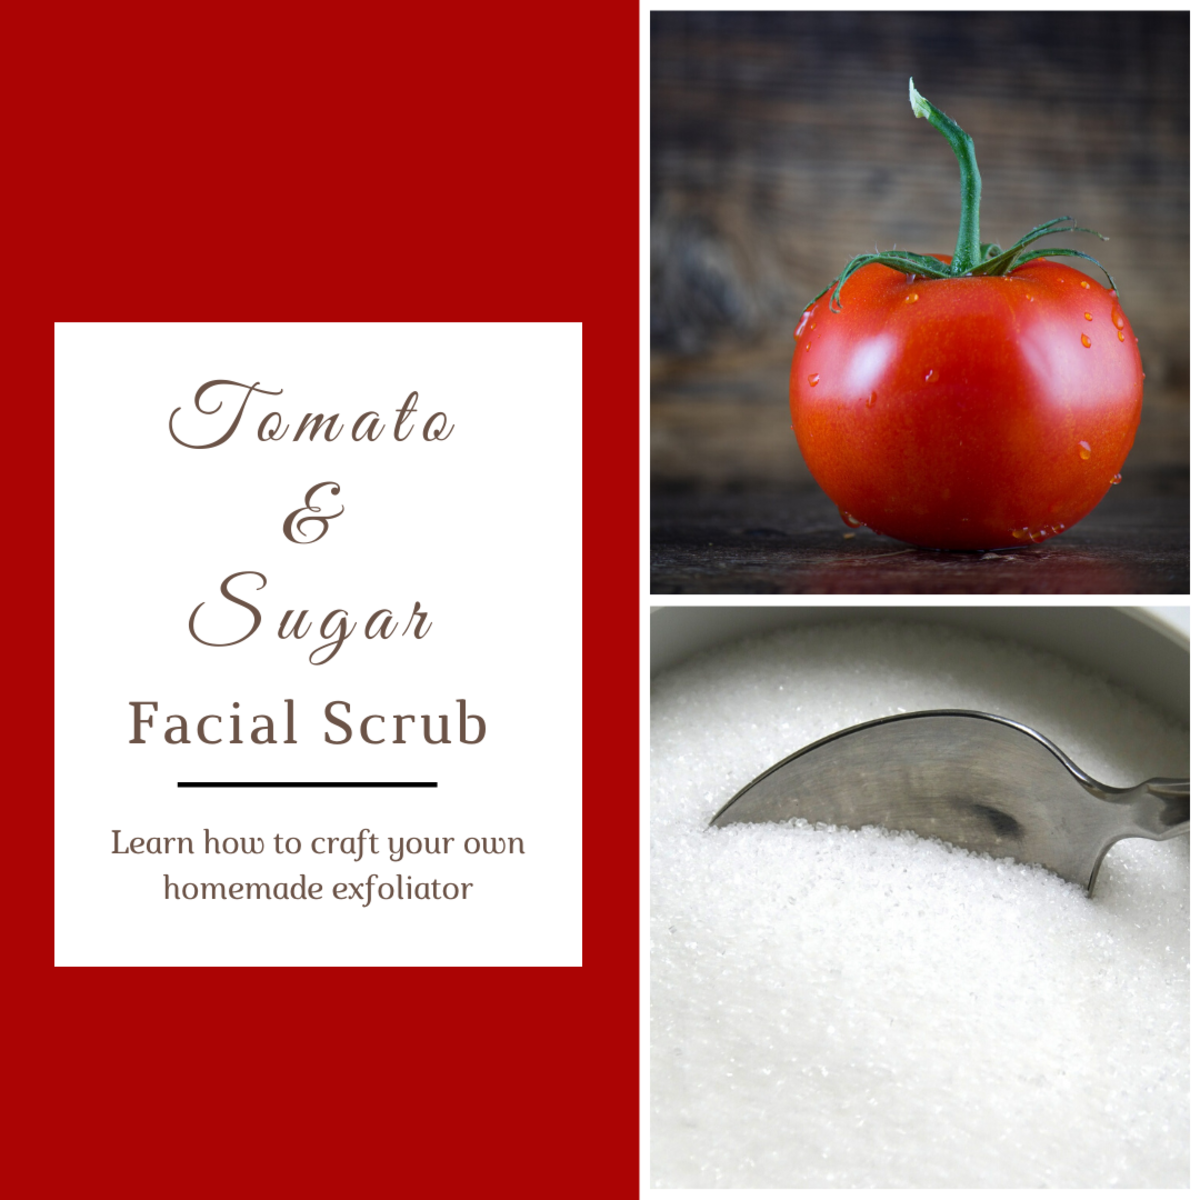 This article will break down some of the benefits of tomatoes and sugar for skin care and will also provide a recipe for making your own DIY tomato and sugar scrub at home.